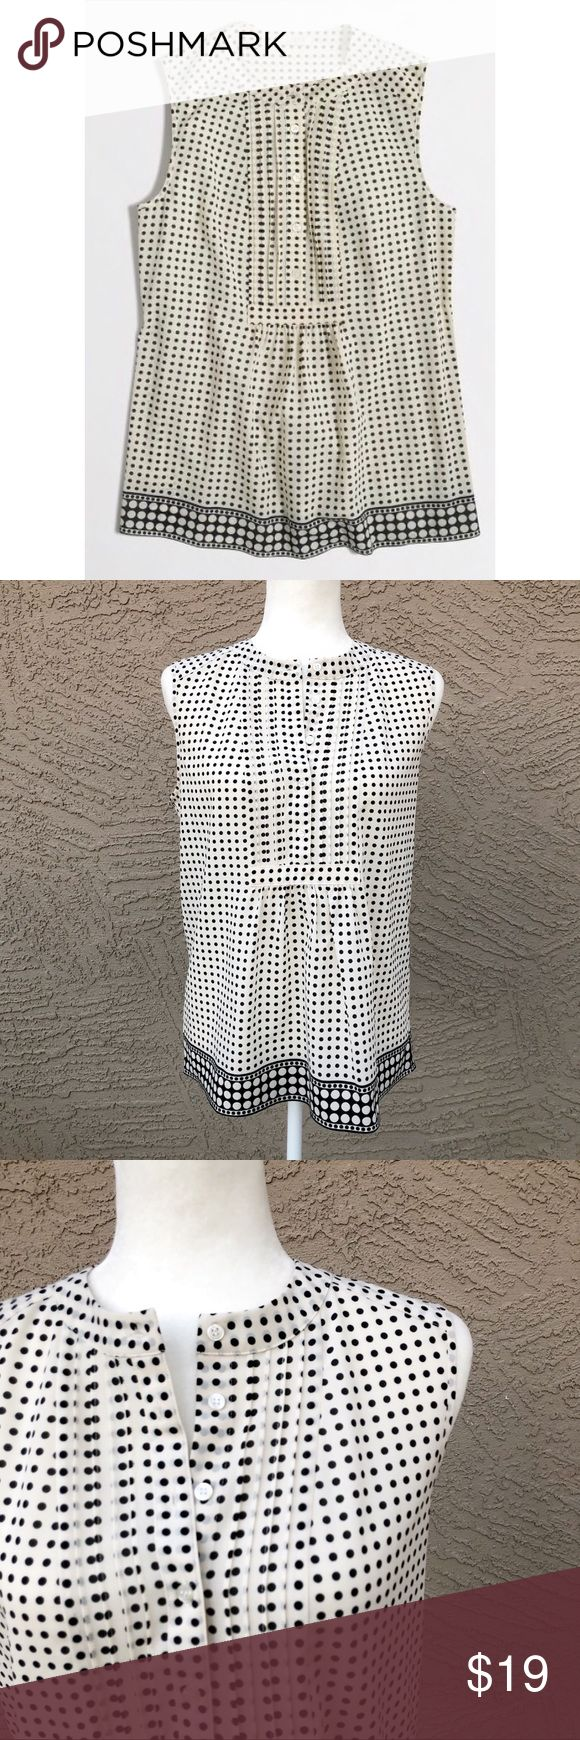 """J. CREW Polka Dot Printed Tuxedo Cami Top Cream & black polka dot printed sleeveless blouse with partial button down & gathered front detail. Size 6 (small). Small mark on the bottom back as shown in photo. Pit to Pit: 19.5"""", Length: 24"""". ✨PFFERS WELCOME✨ J. Crew Tops"""